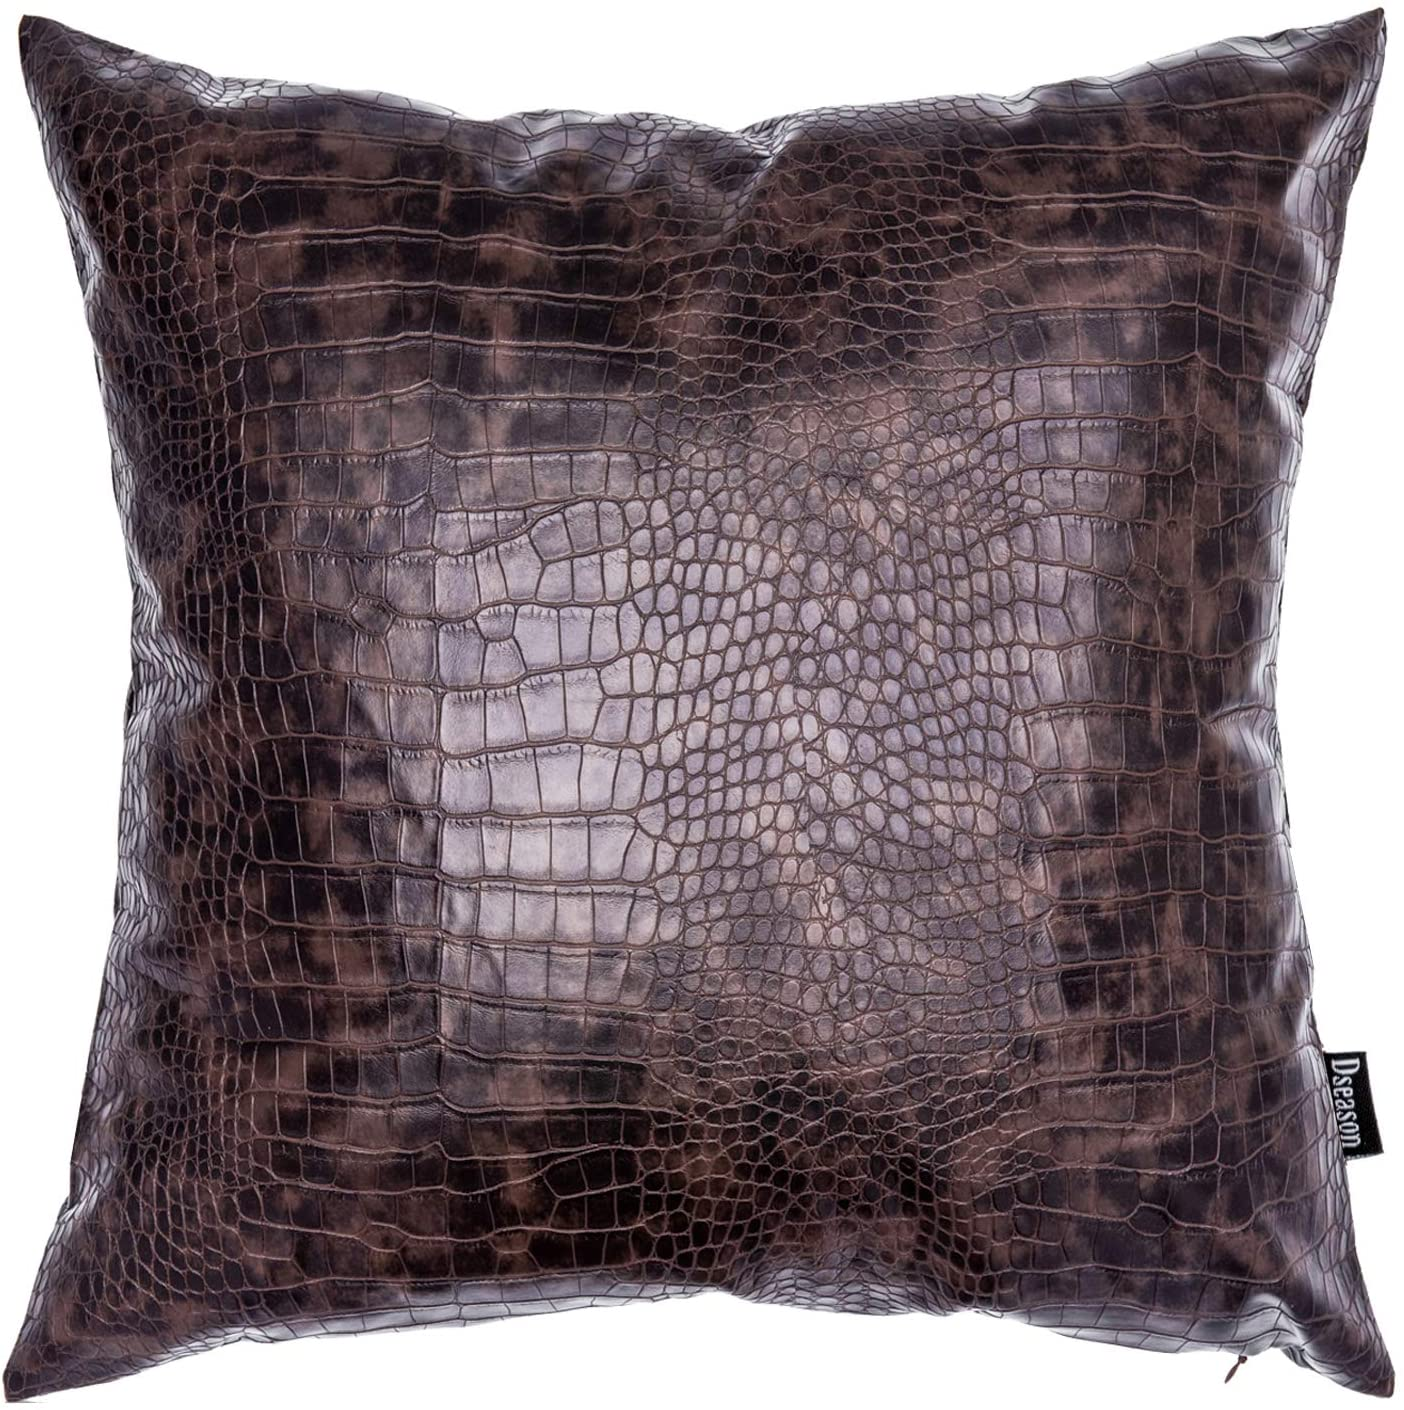 Dseason Faux Leather Crocodile Pillowcase Throw Pillow Cover,Modern Design Decorative Square Pillows Cases Bedroom Living Room Cushion Cases for Couch Bed Sofa 18 X 18 Inches Light Tan